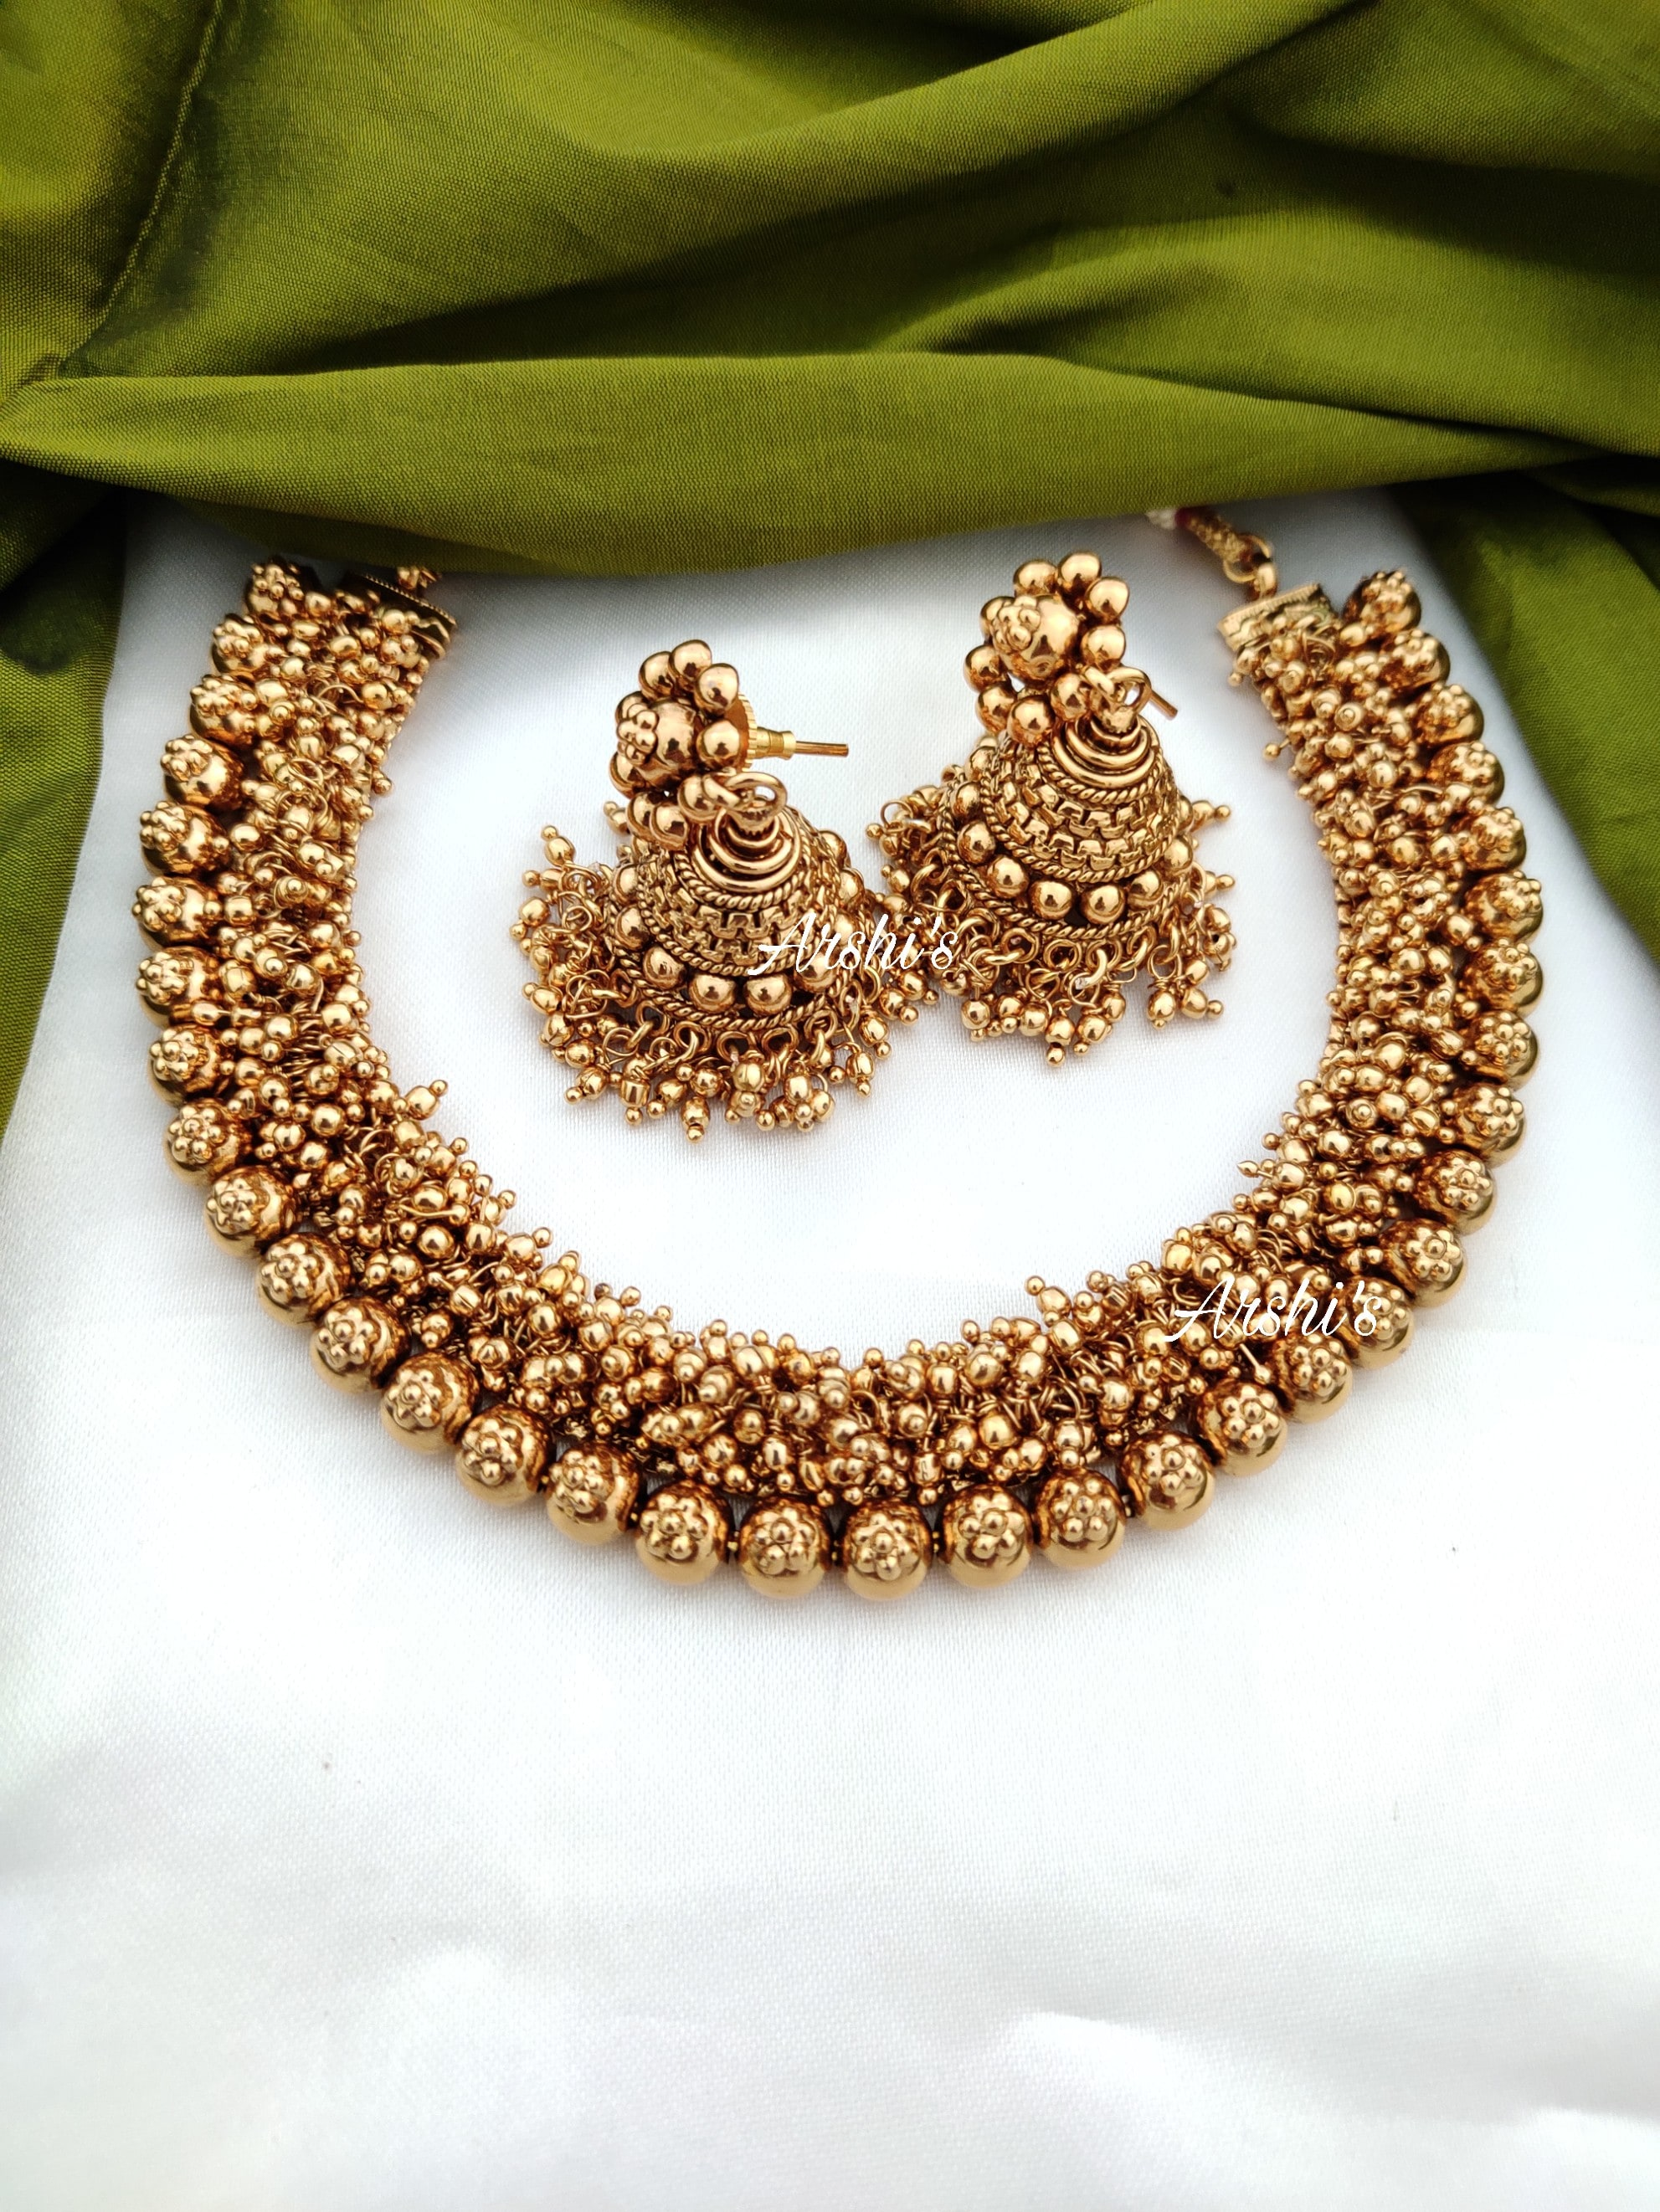 Imitation-Antique-Gold-Bead-Necklace-01